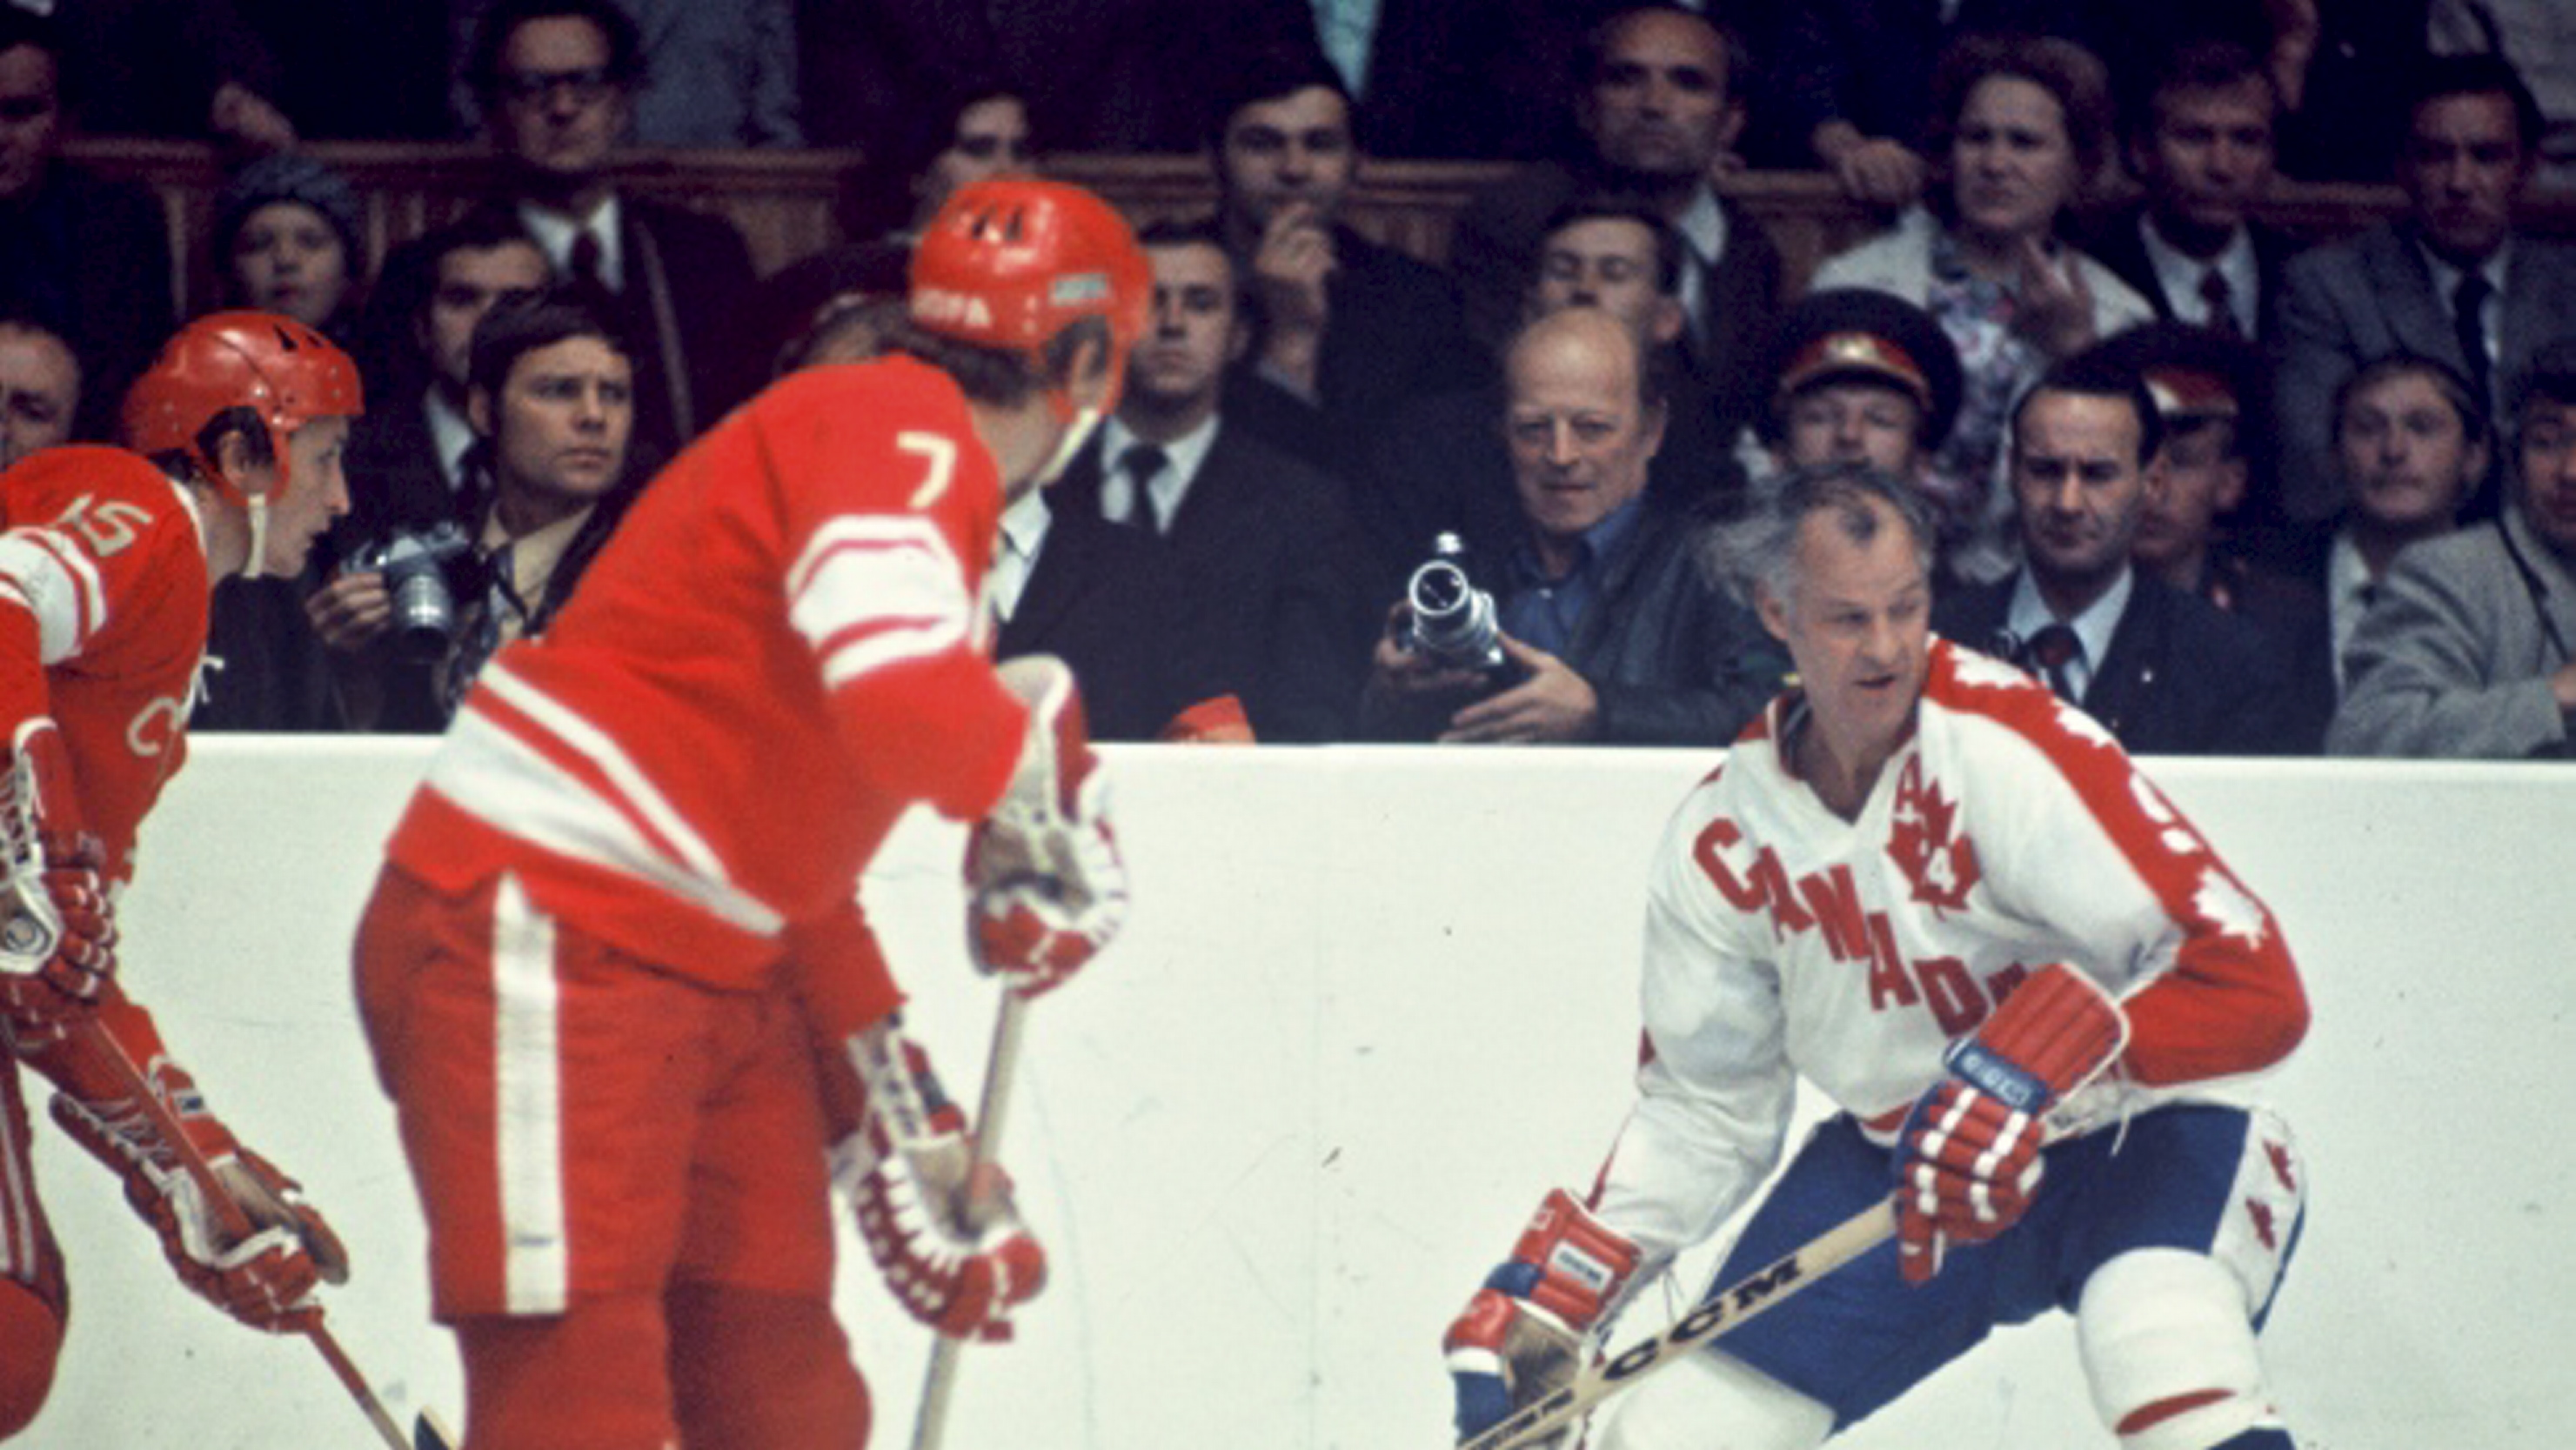 gordie-howe-in-the-1974-summit-series